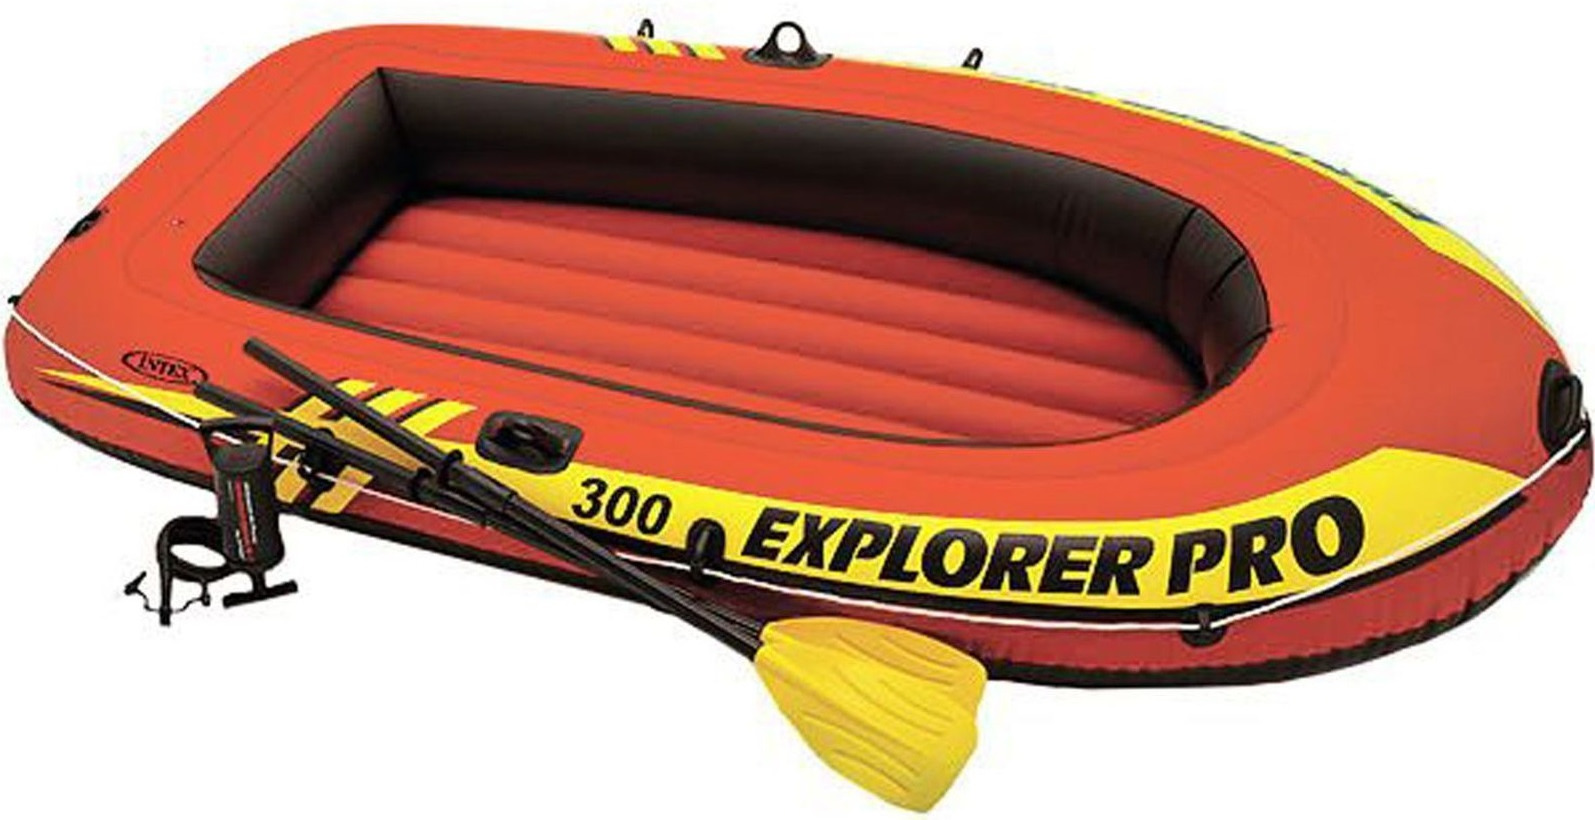 Лодка надувная Intex Explorer Pro 300 Set, 58358NP, с веслами и насосом, до 200 кг, 244 х 117 х 36 см